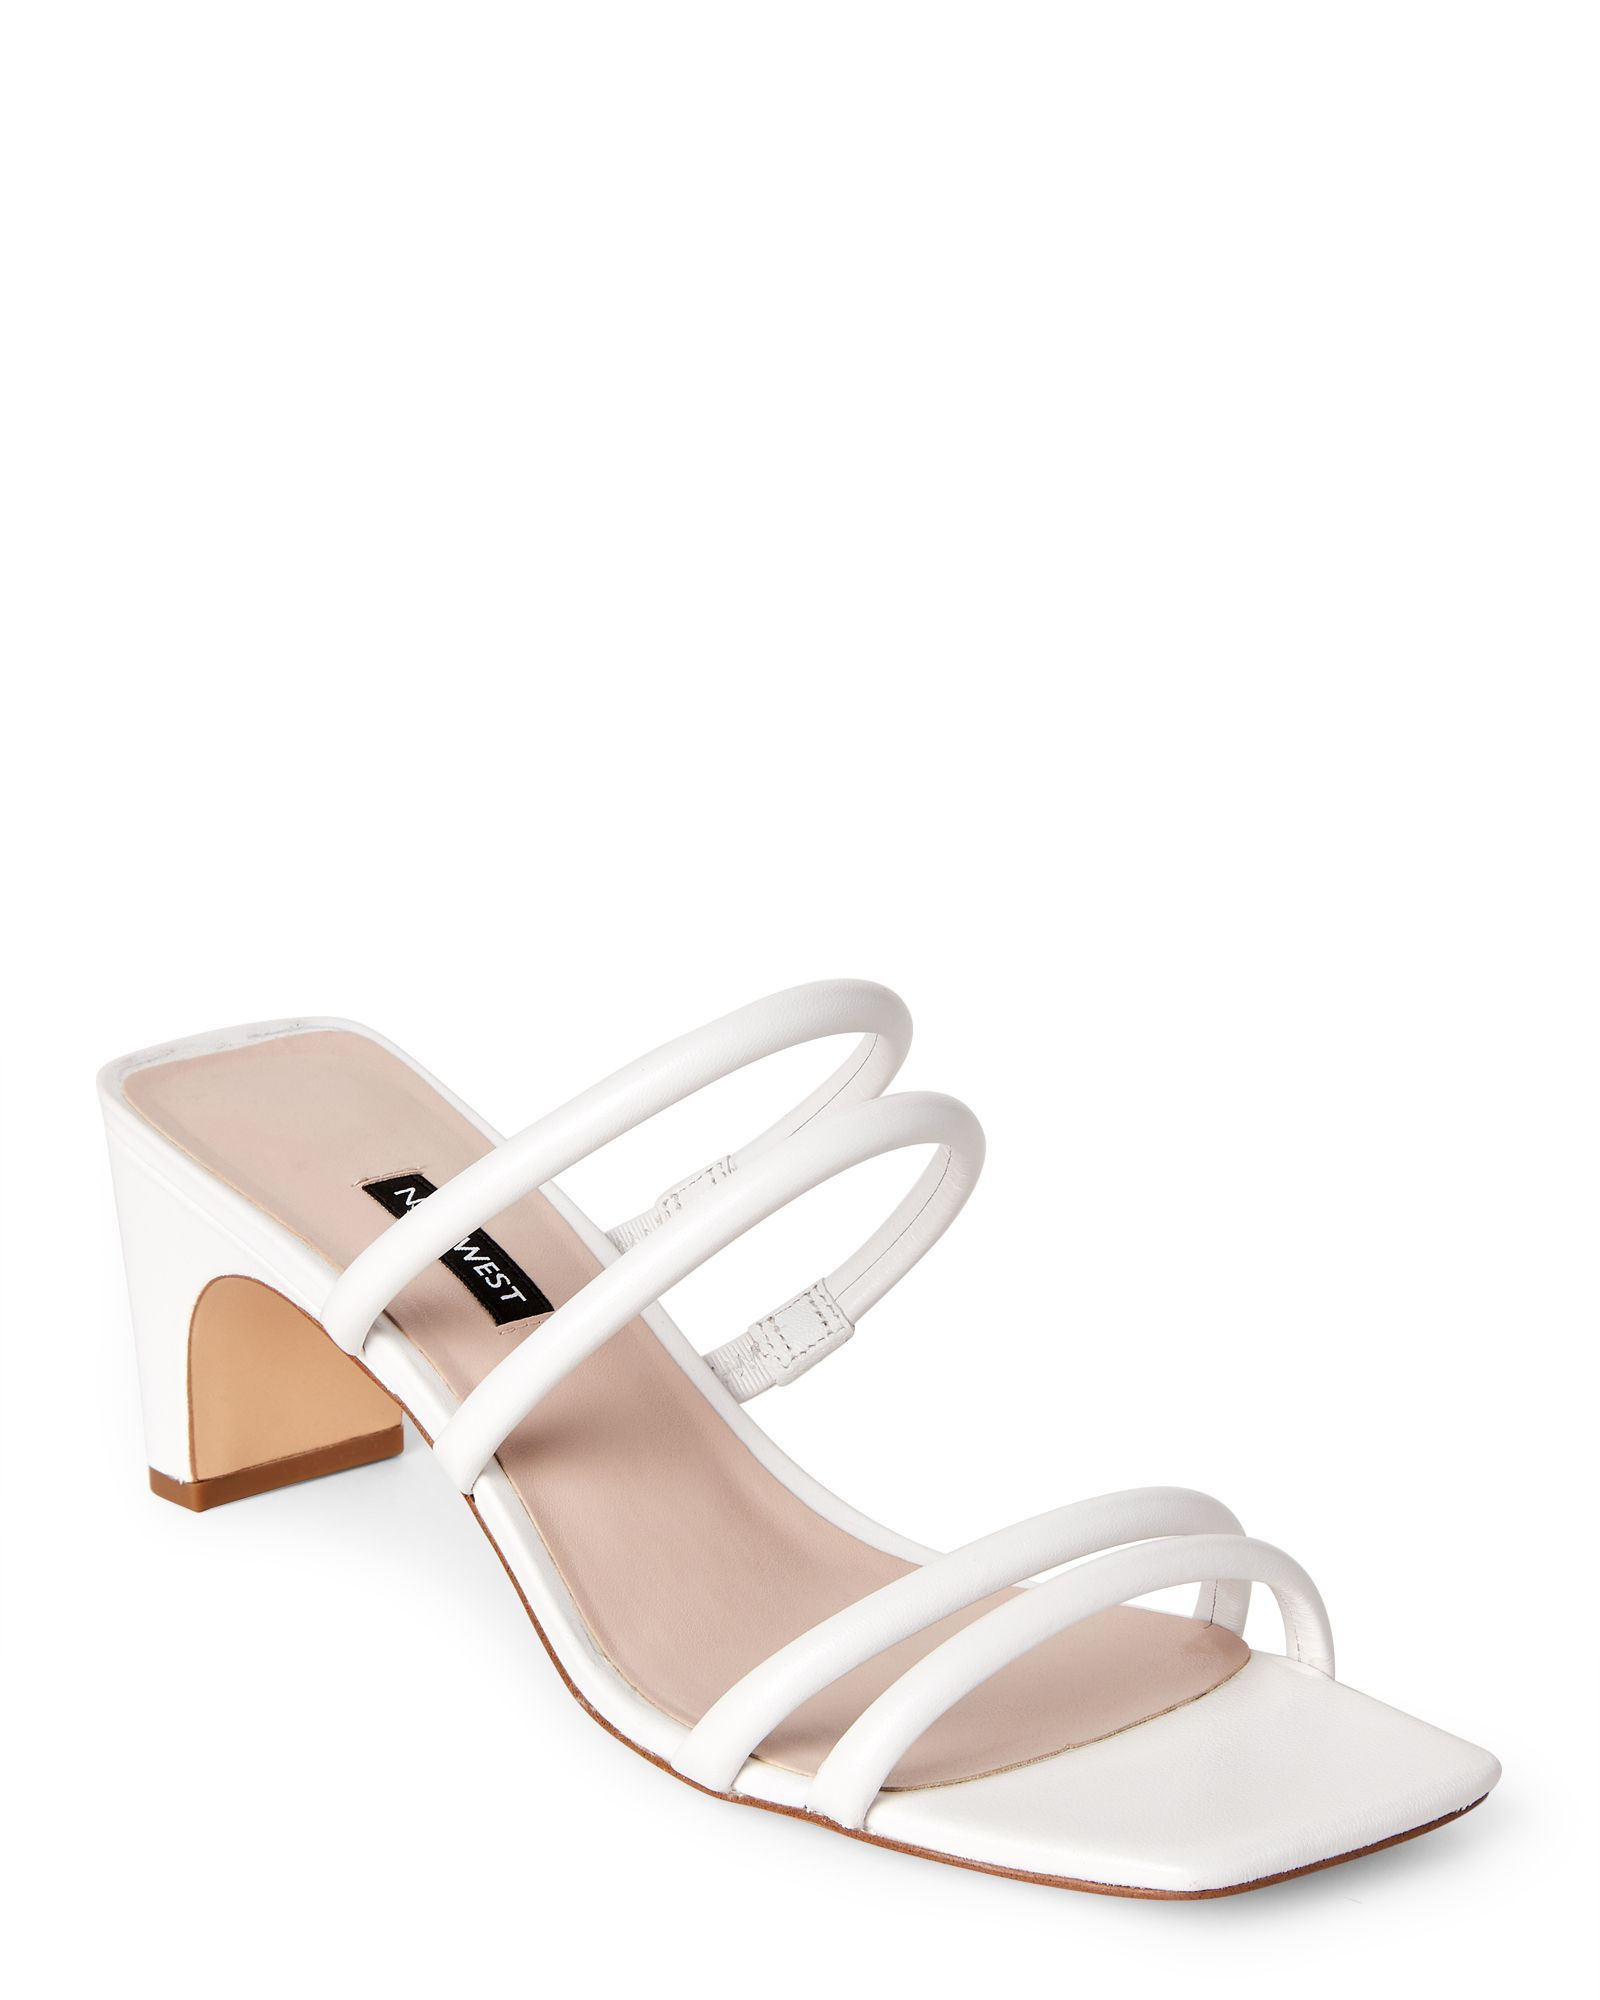 Nine West White Nakato Leather Tubular Strap Sandals More Than 9k Of Strappy Sandals Outfits F In 2021 Womens Shoes Wedges White Strappy Sandals Strappy Sandals Outfit